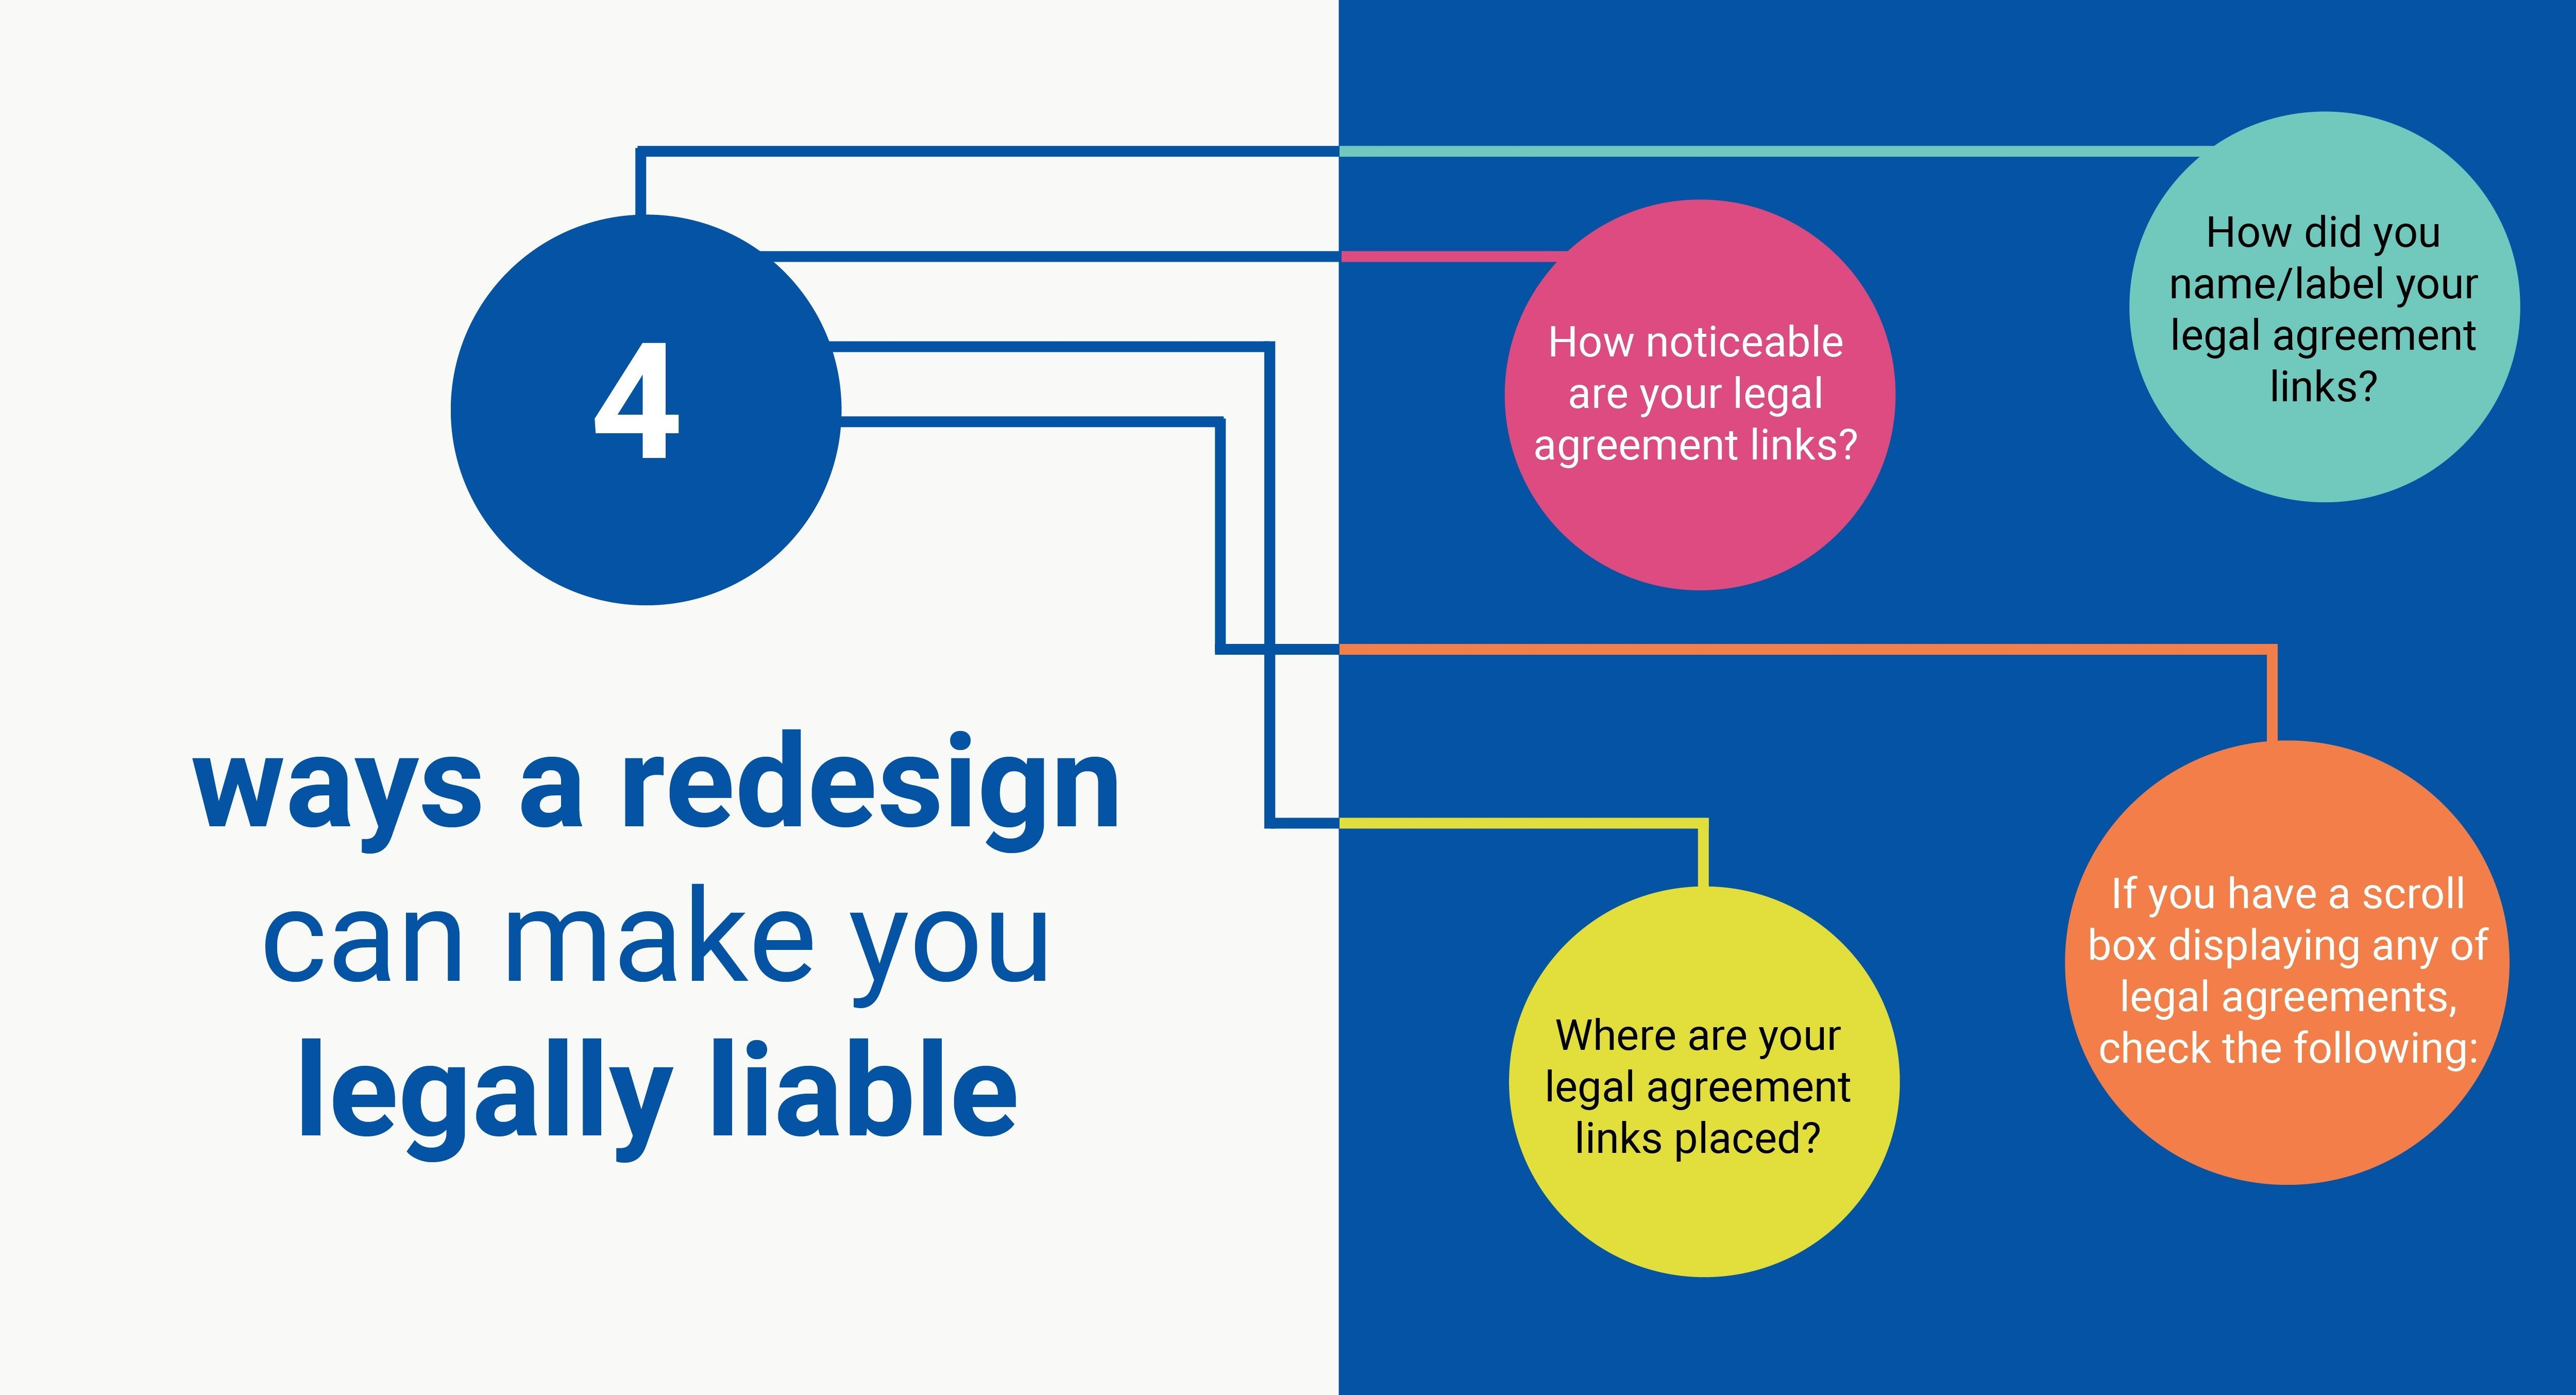 Image for: 4 Ways a Redesign Can Make You Legally Liable